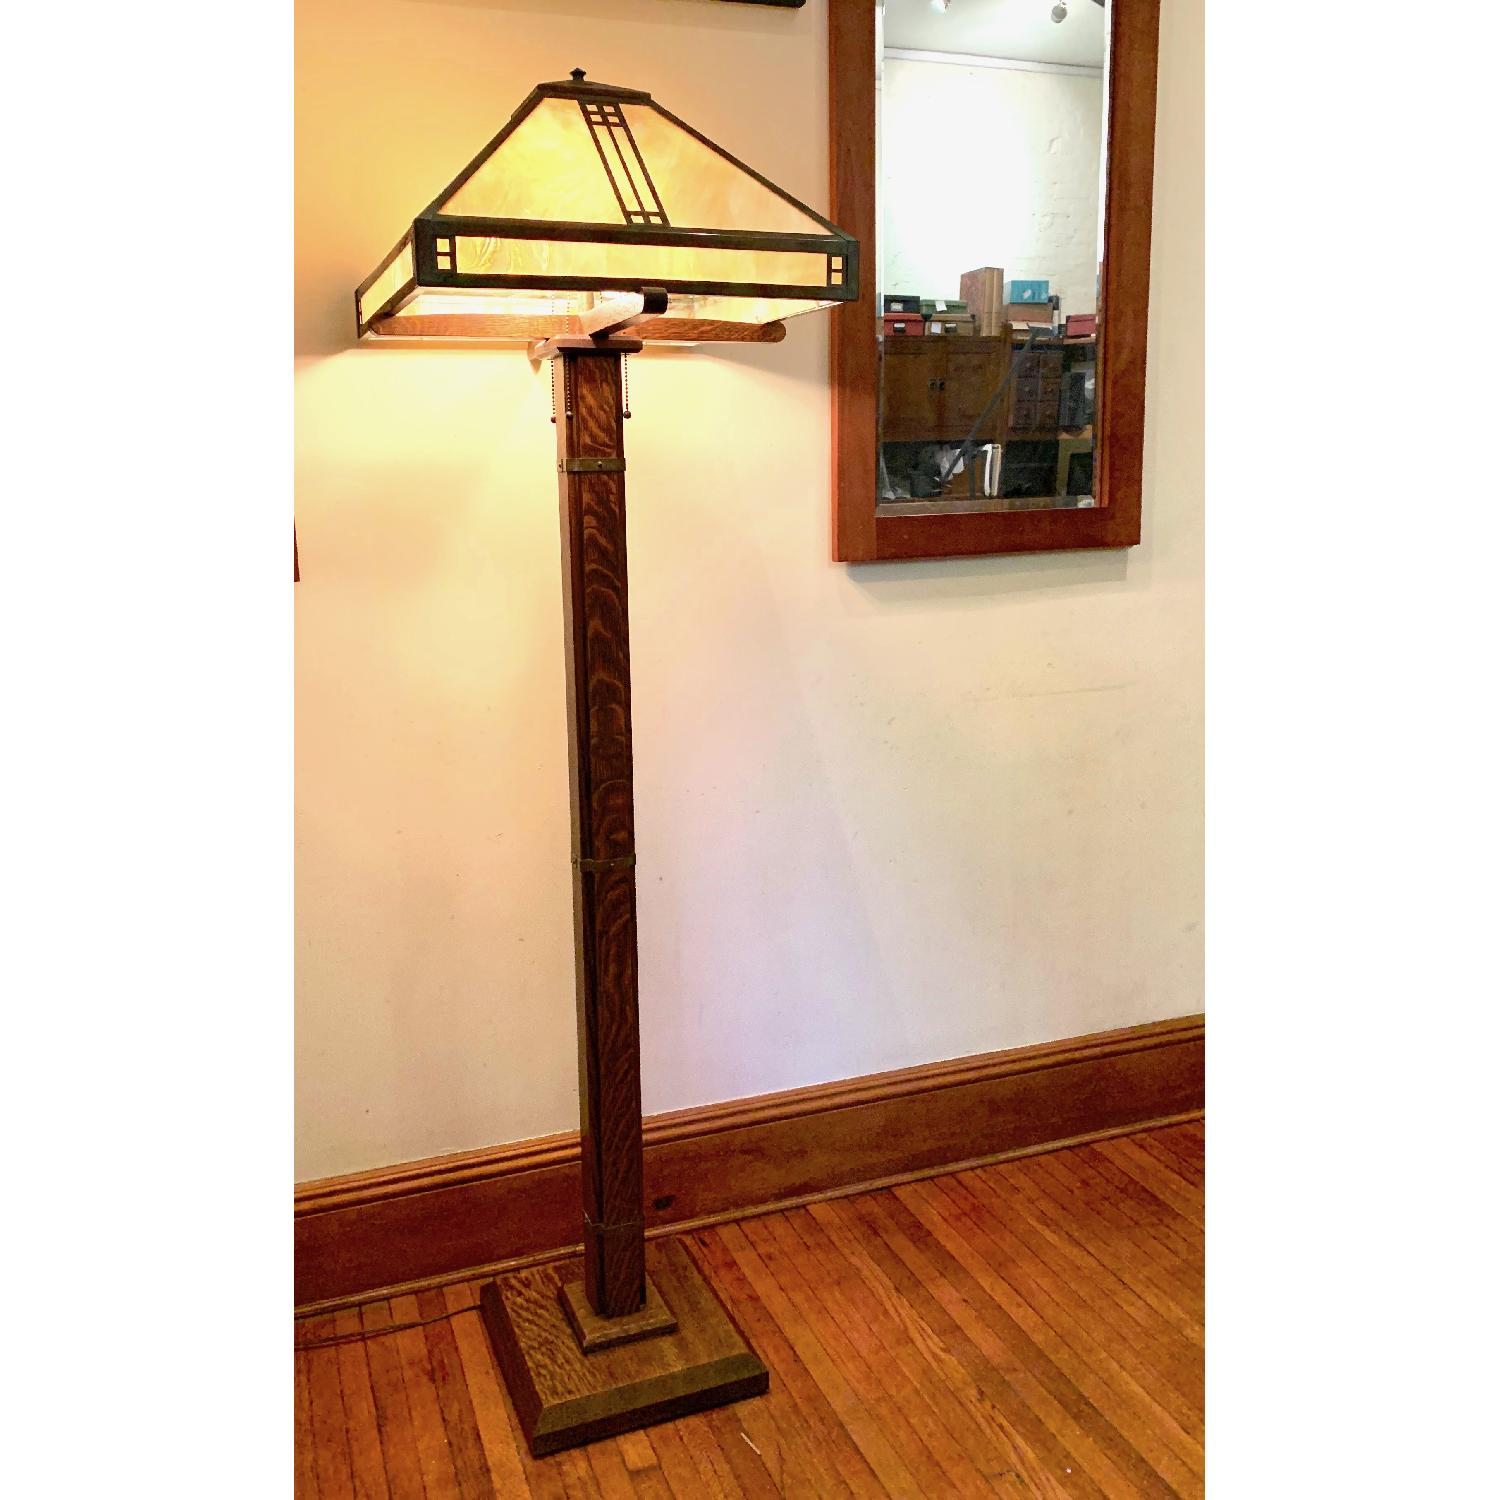 Arroyo Craftsman Arts & Crafts Floor lamp - image-1